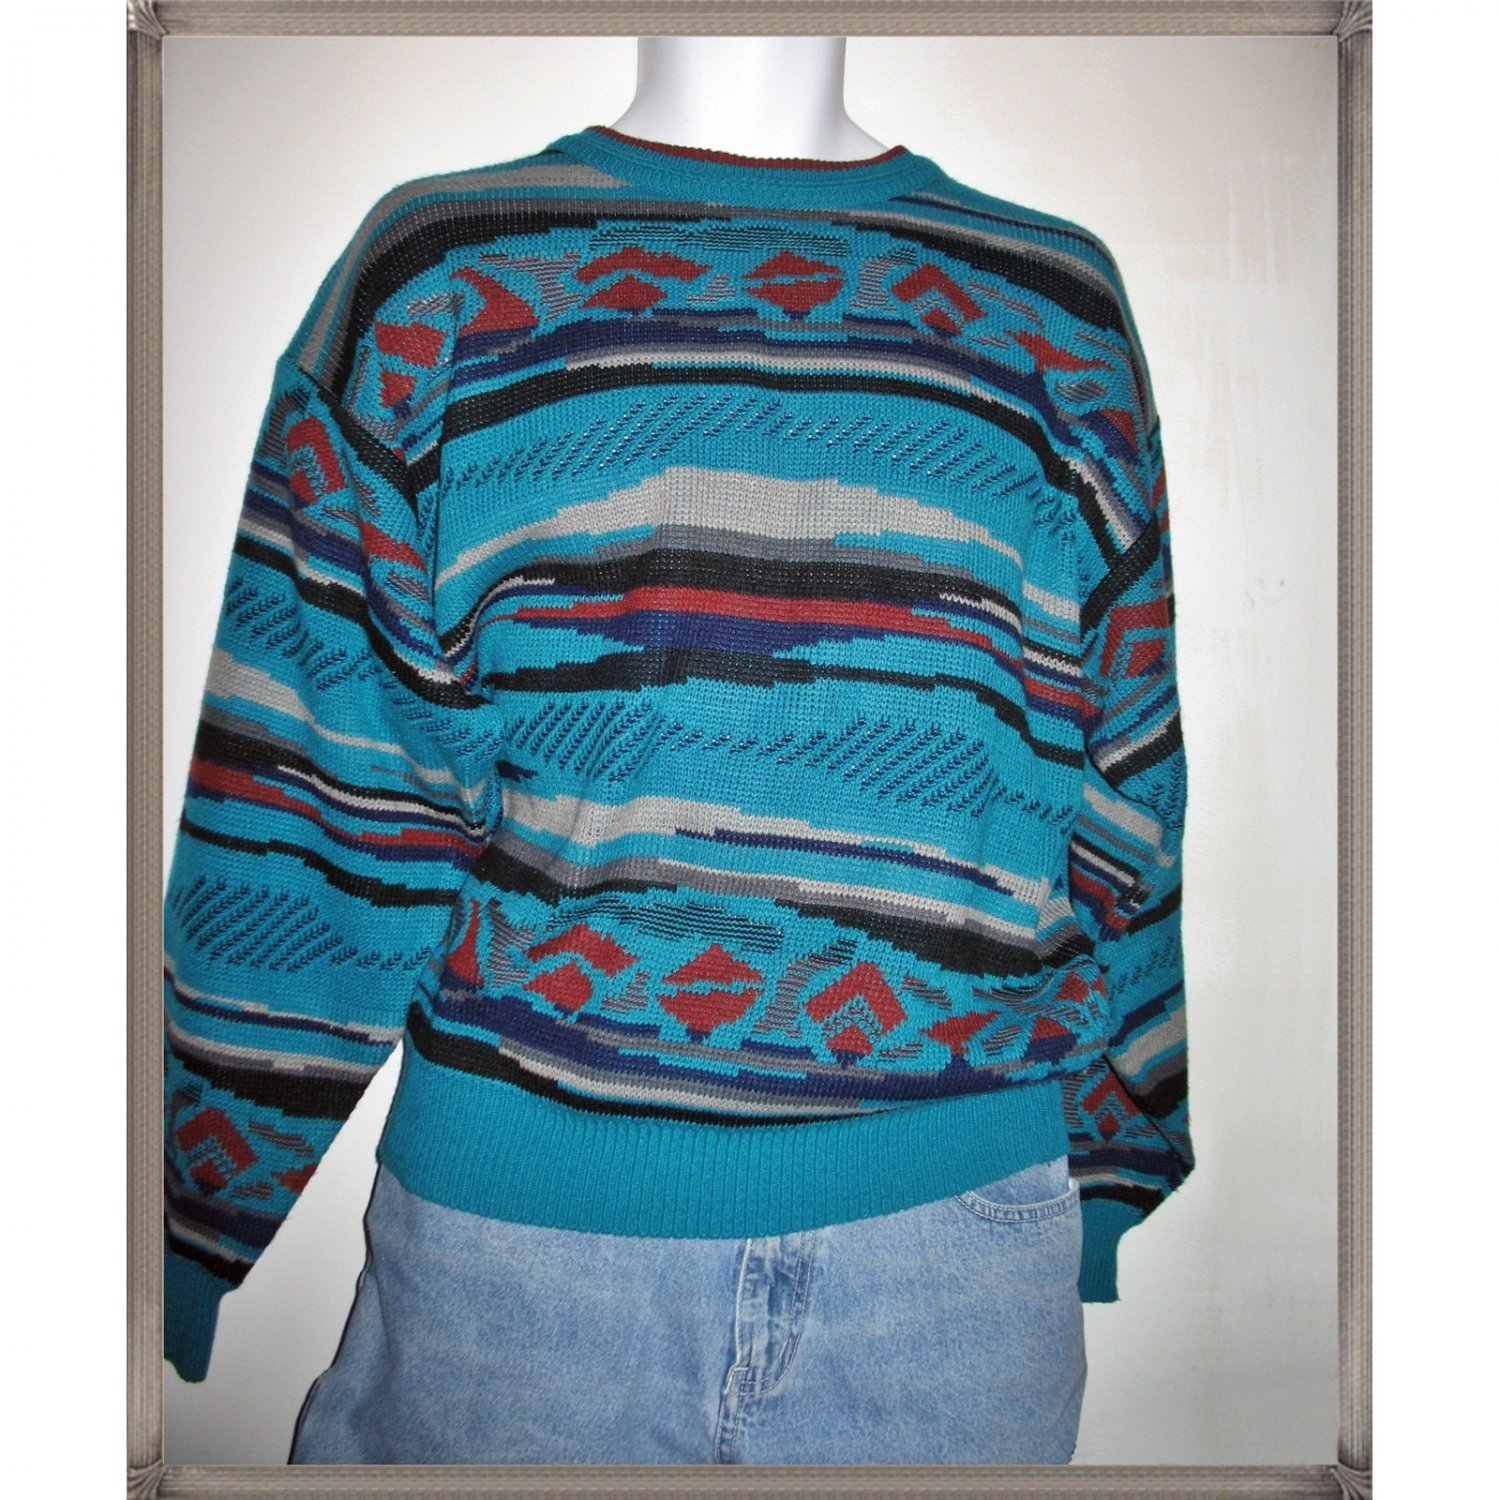 Vintage 70s 80s Southwestern Tribal Design Pullover Sweater Size - Large